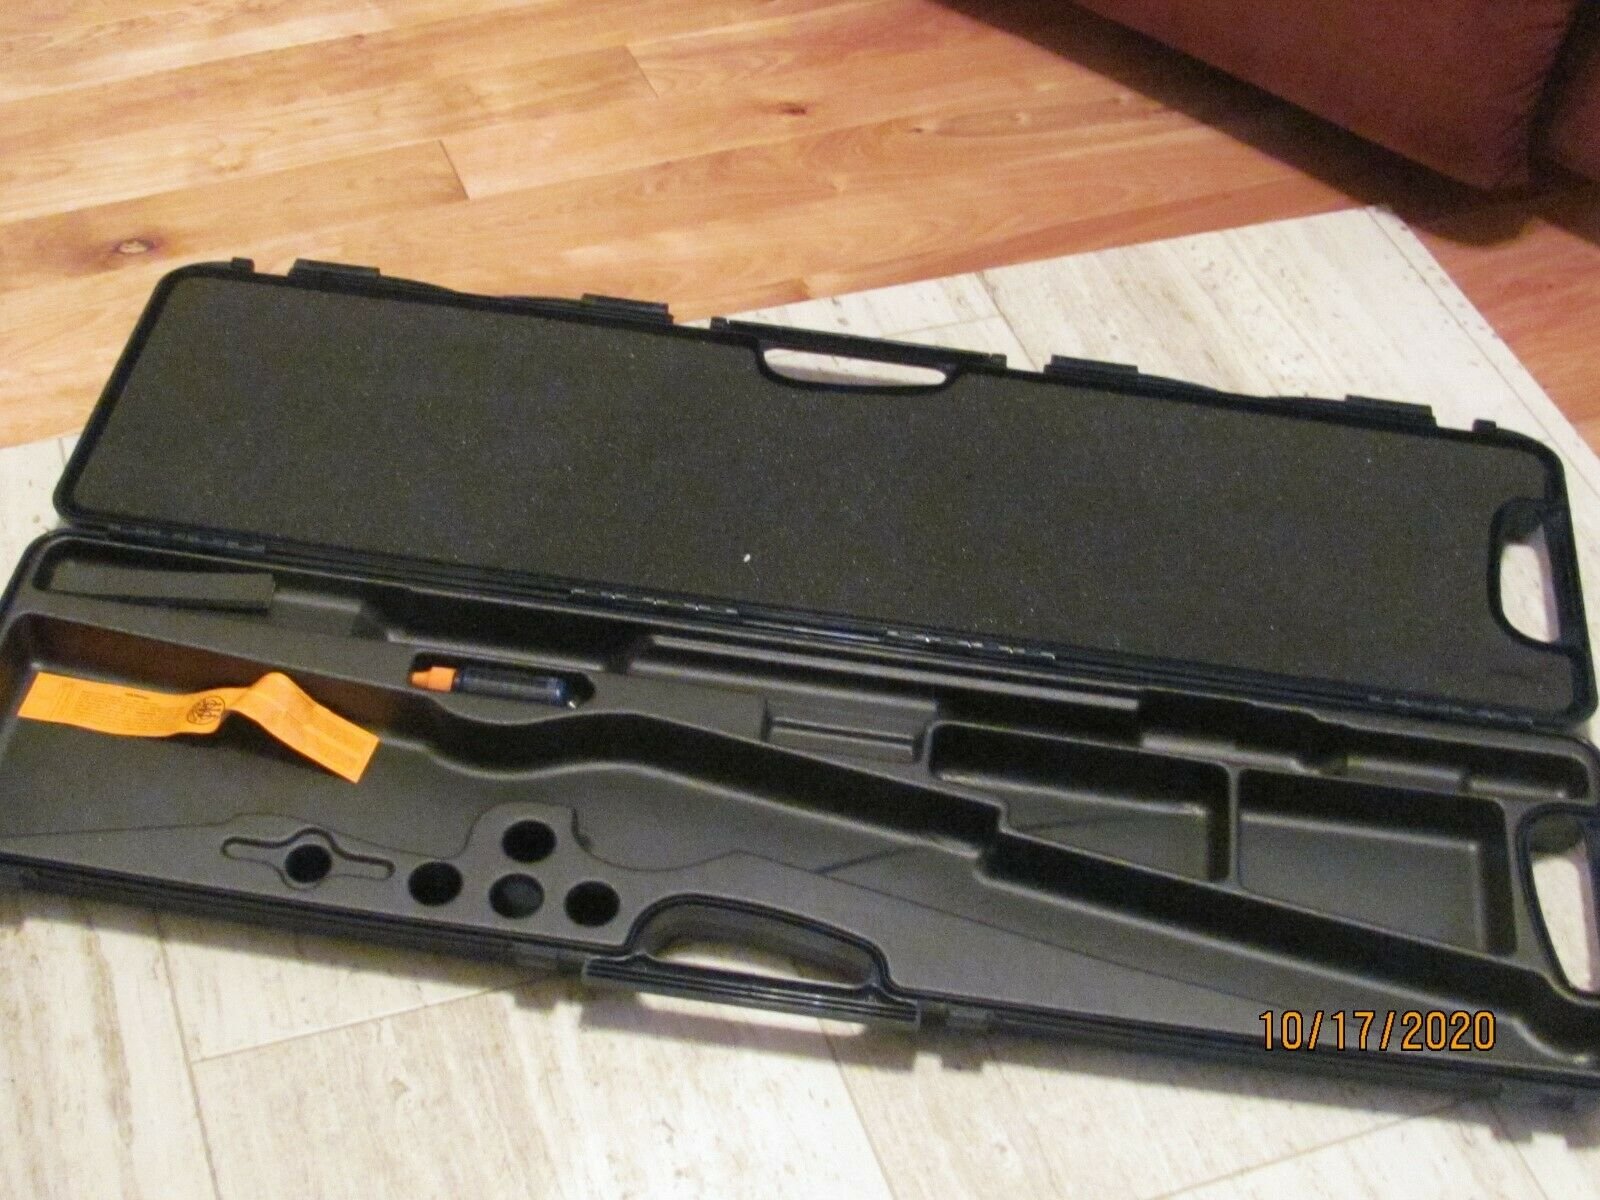 Beretta Shotgun Case AL591 12 Gauge Excellent Cond Ship In Orig Cardboard Box - $20.00